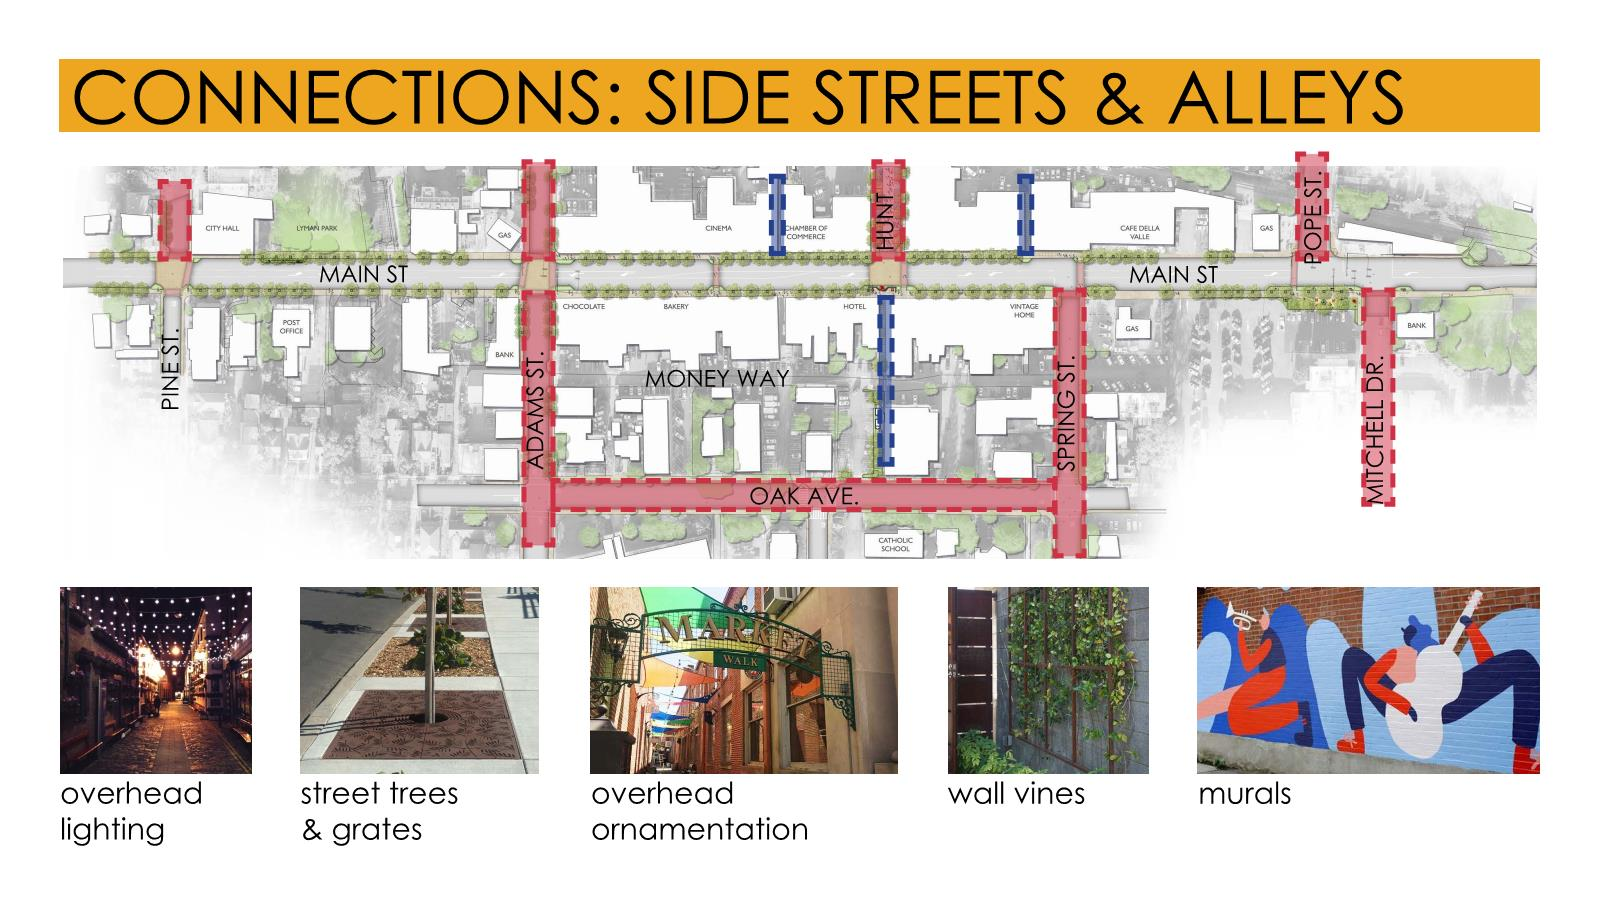 Side streets and alleys can expand the Main Street character and enhance pedestrian connections.